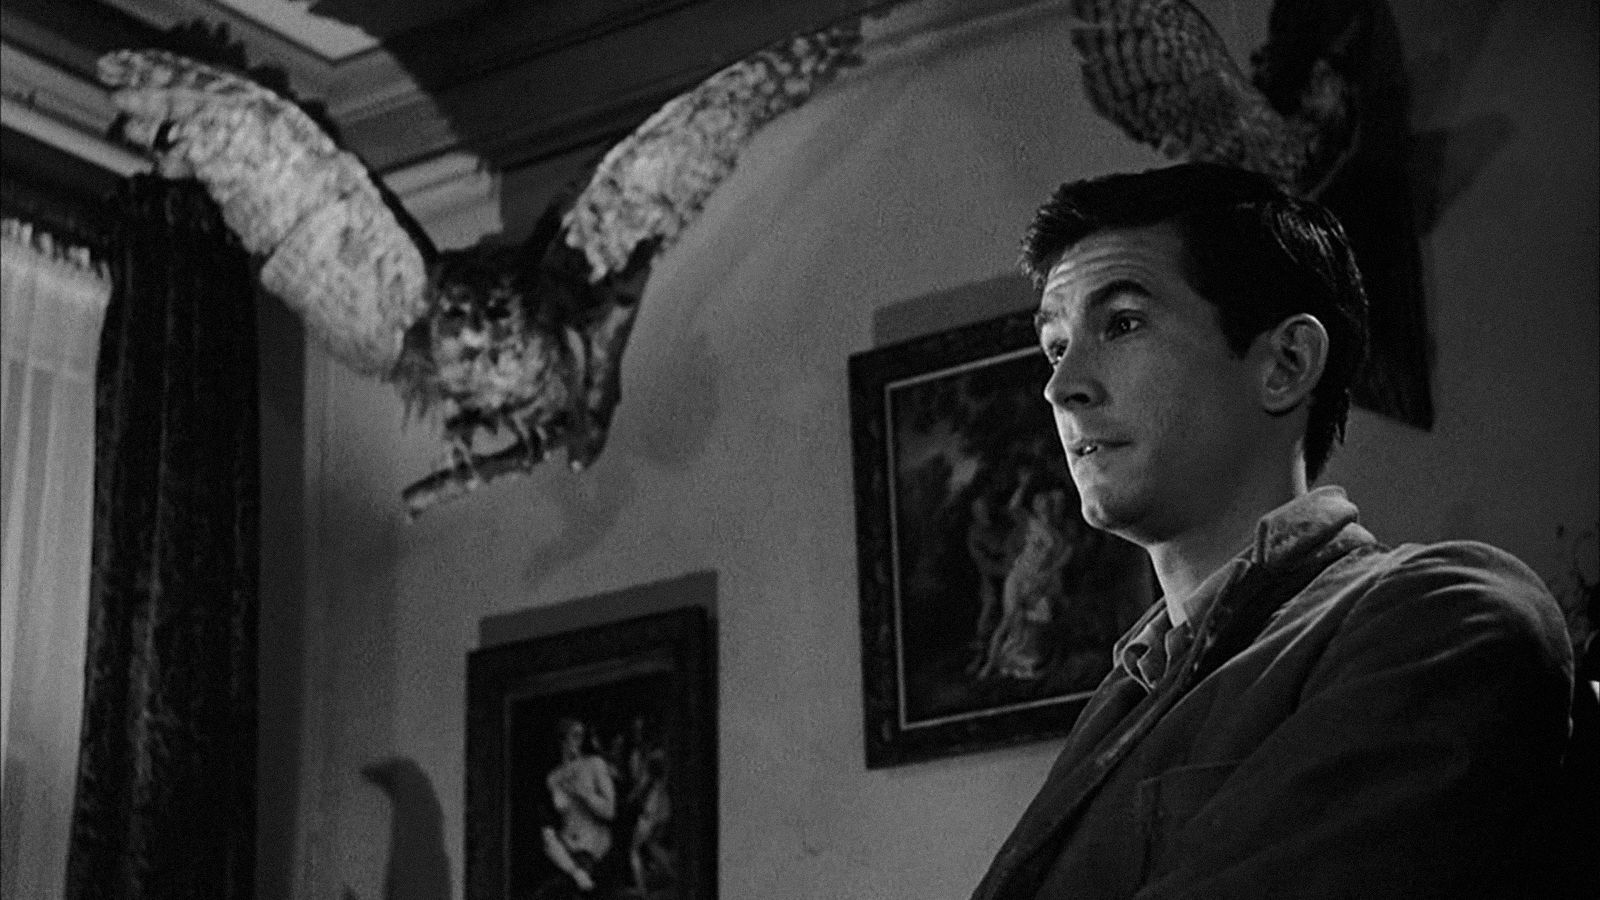 Psycho, 50s movies, 50, norman bates, scary, scared, movies/tv